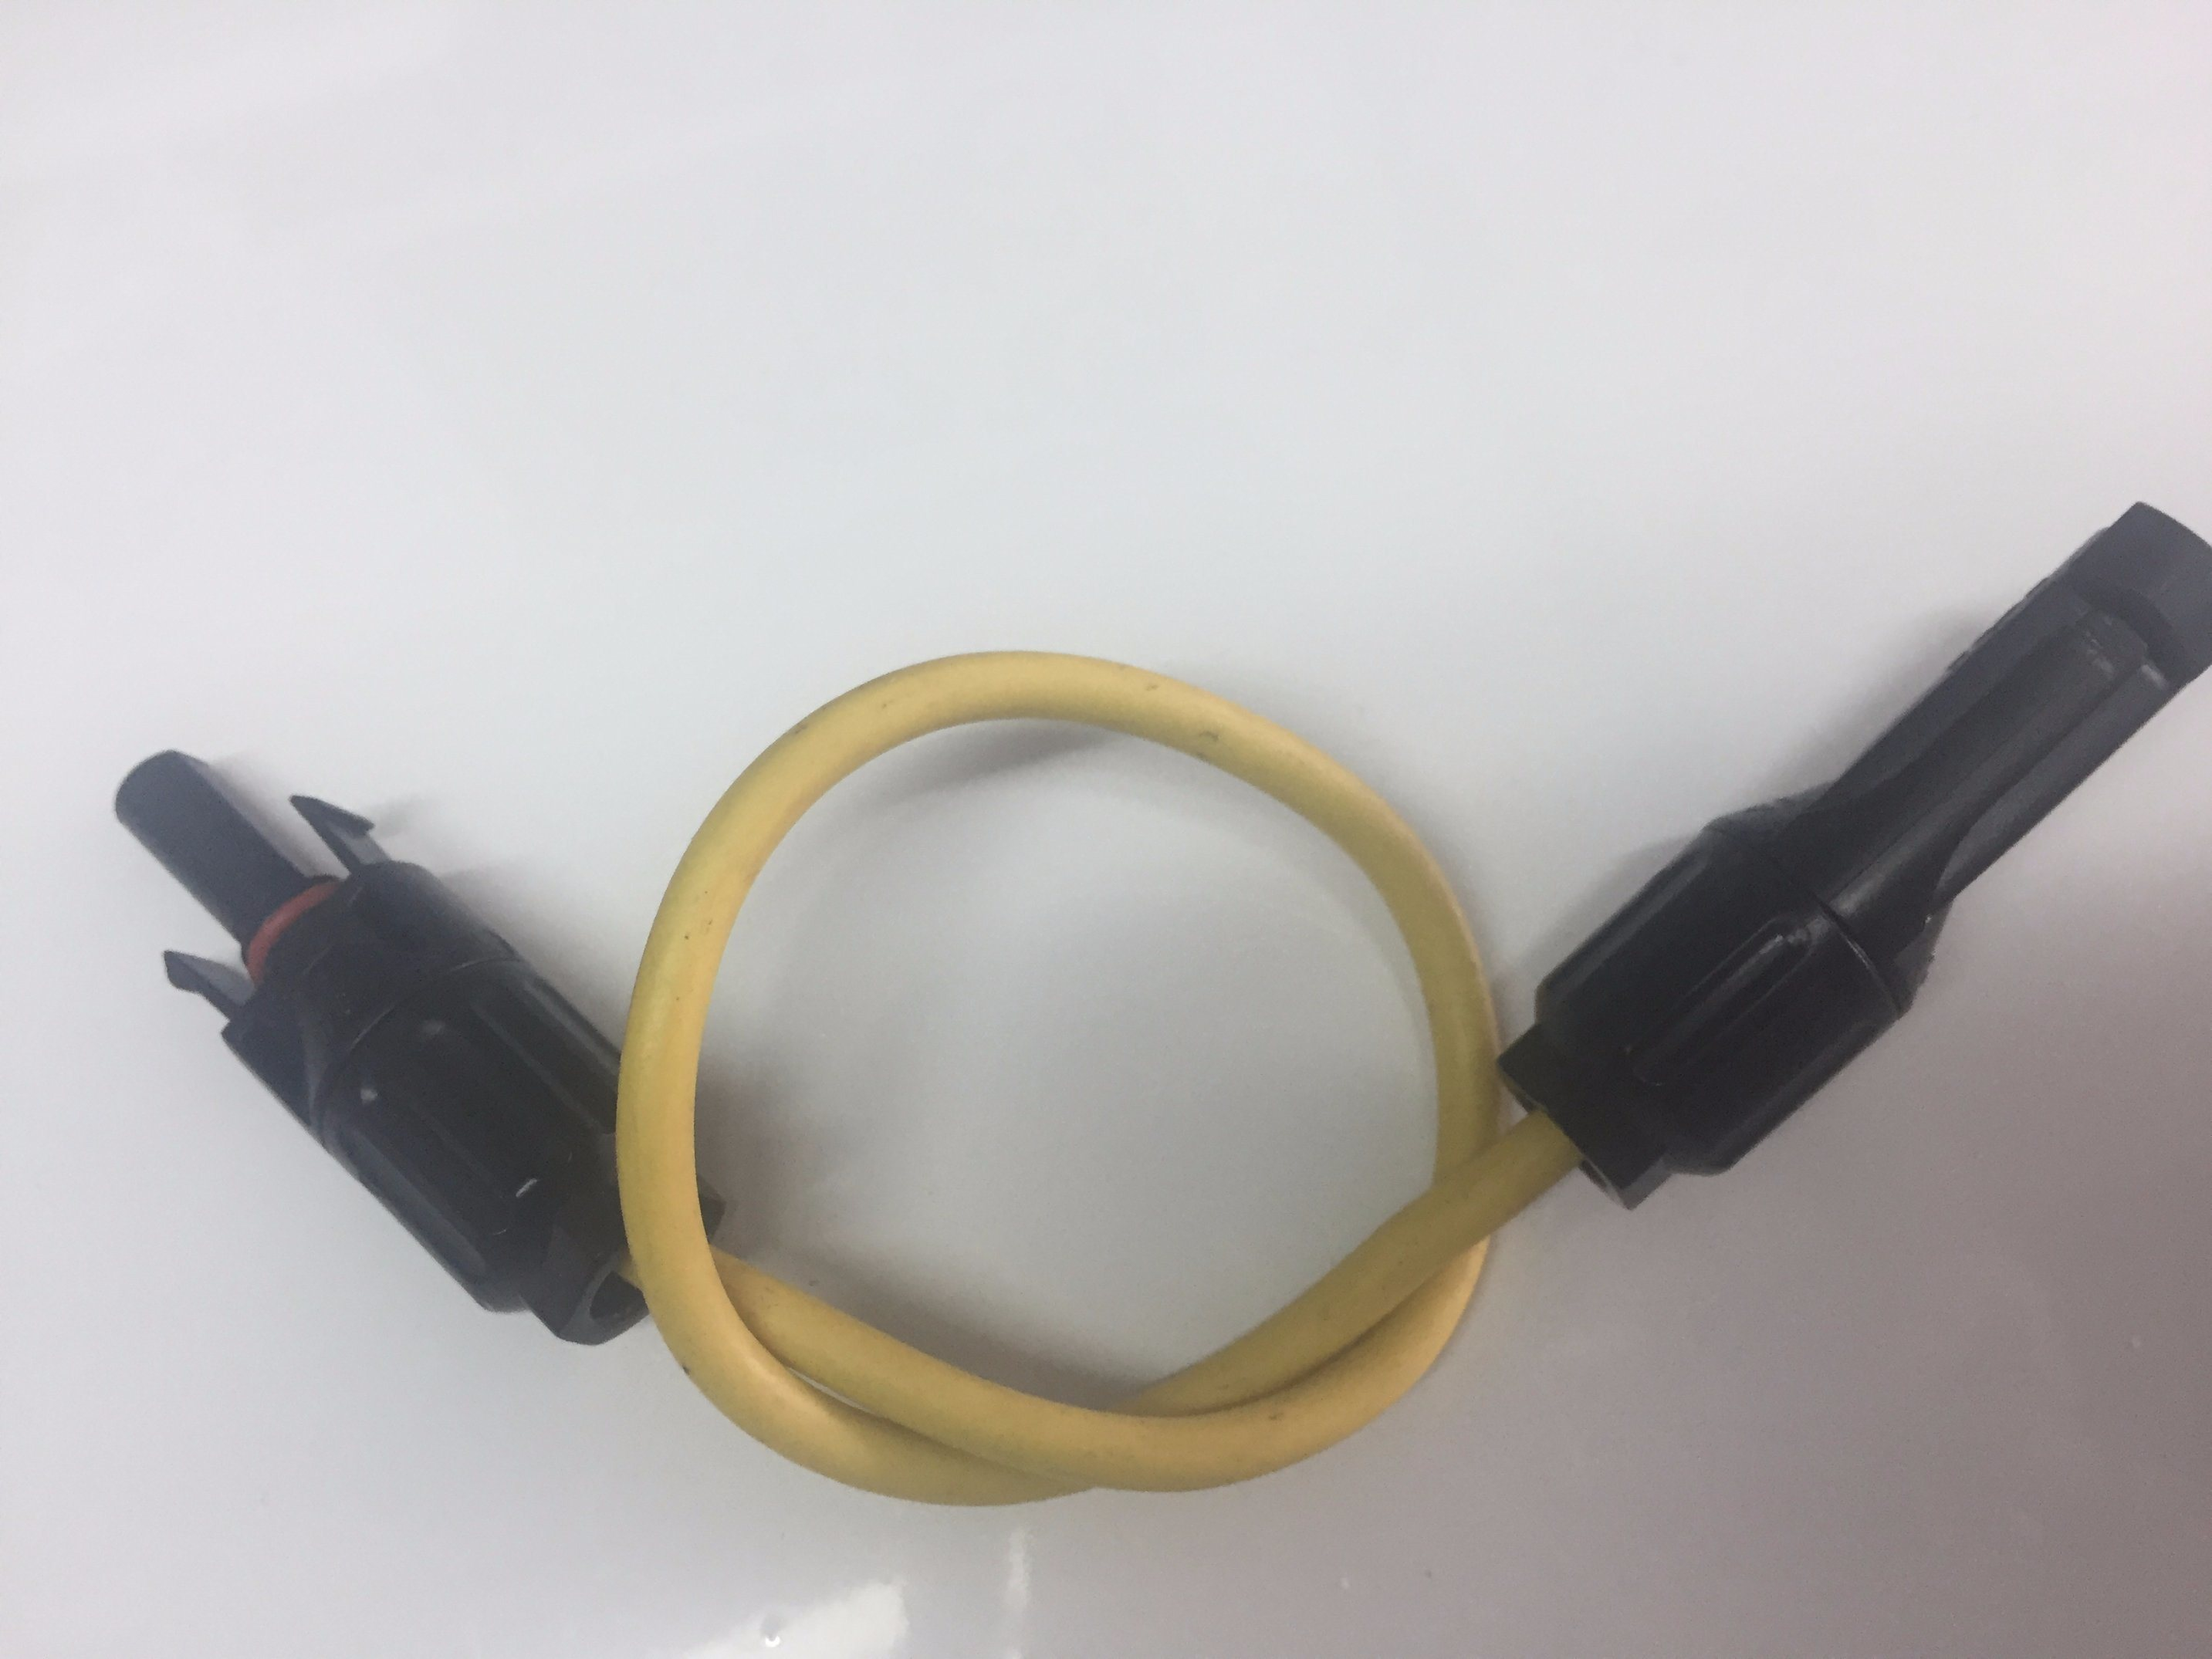 Mc4 Connector with 2.5/4/6mm Wire Harness Customization